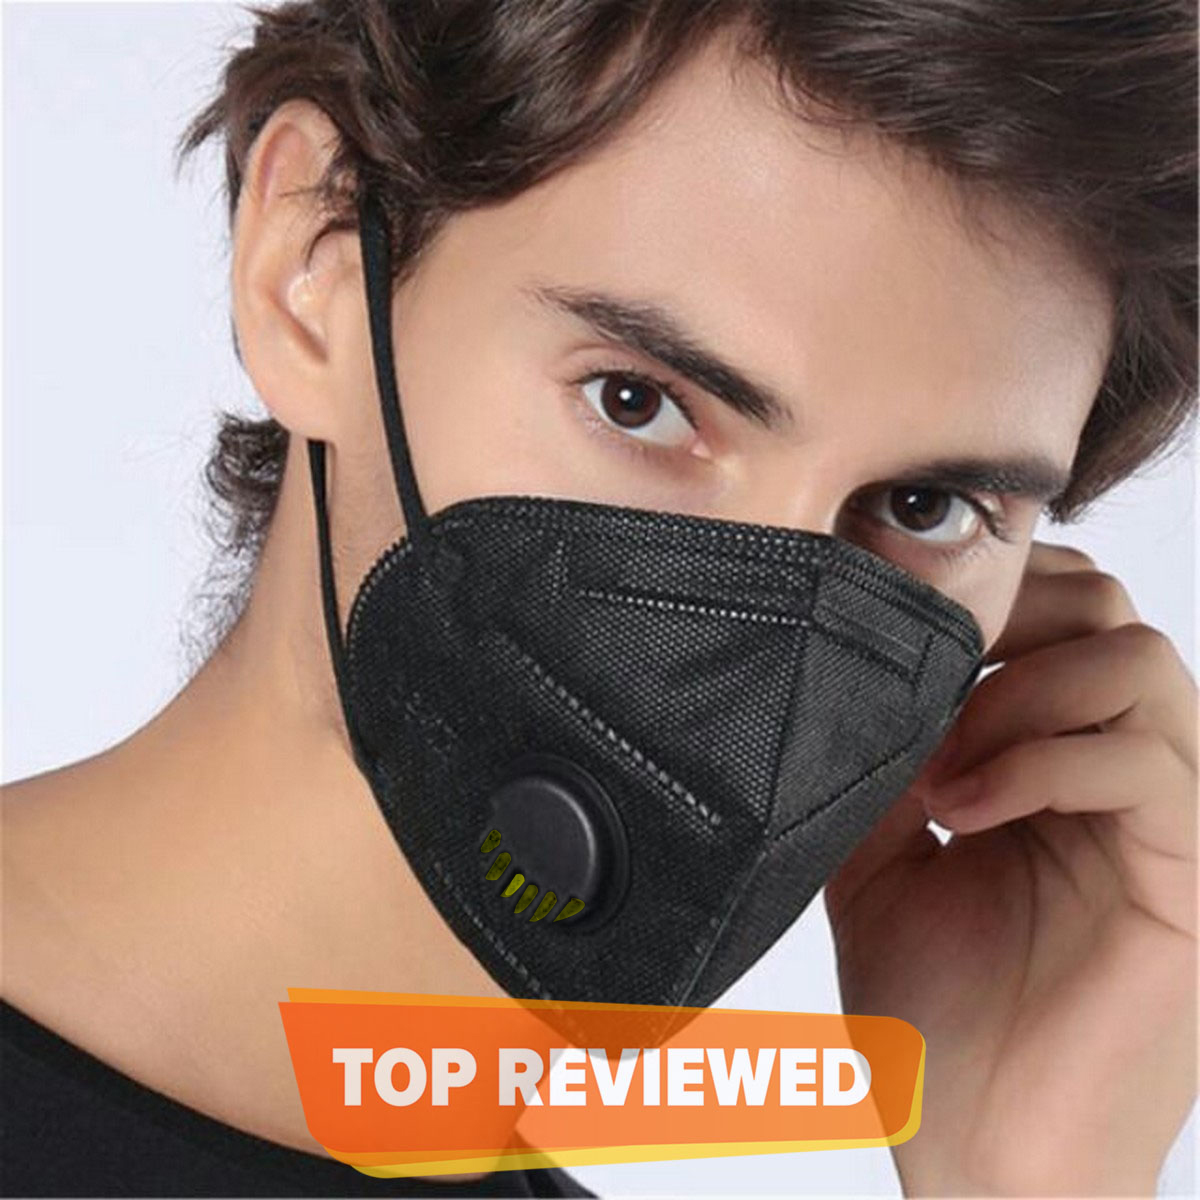 KN95_ MASK_ White RESPIRATOR WITH 5 Layers Protection - CE Certified VALVE & Nose Pin - Shop4you